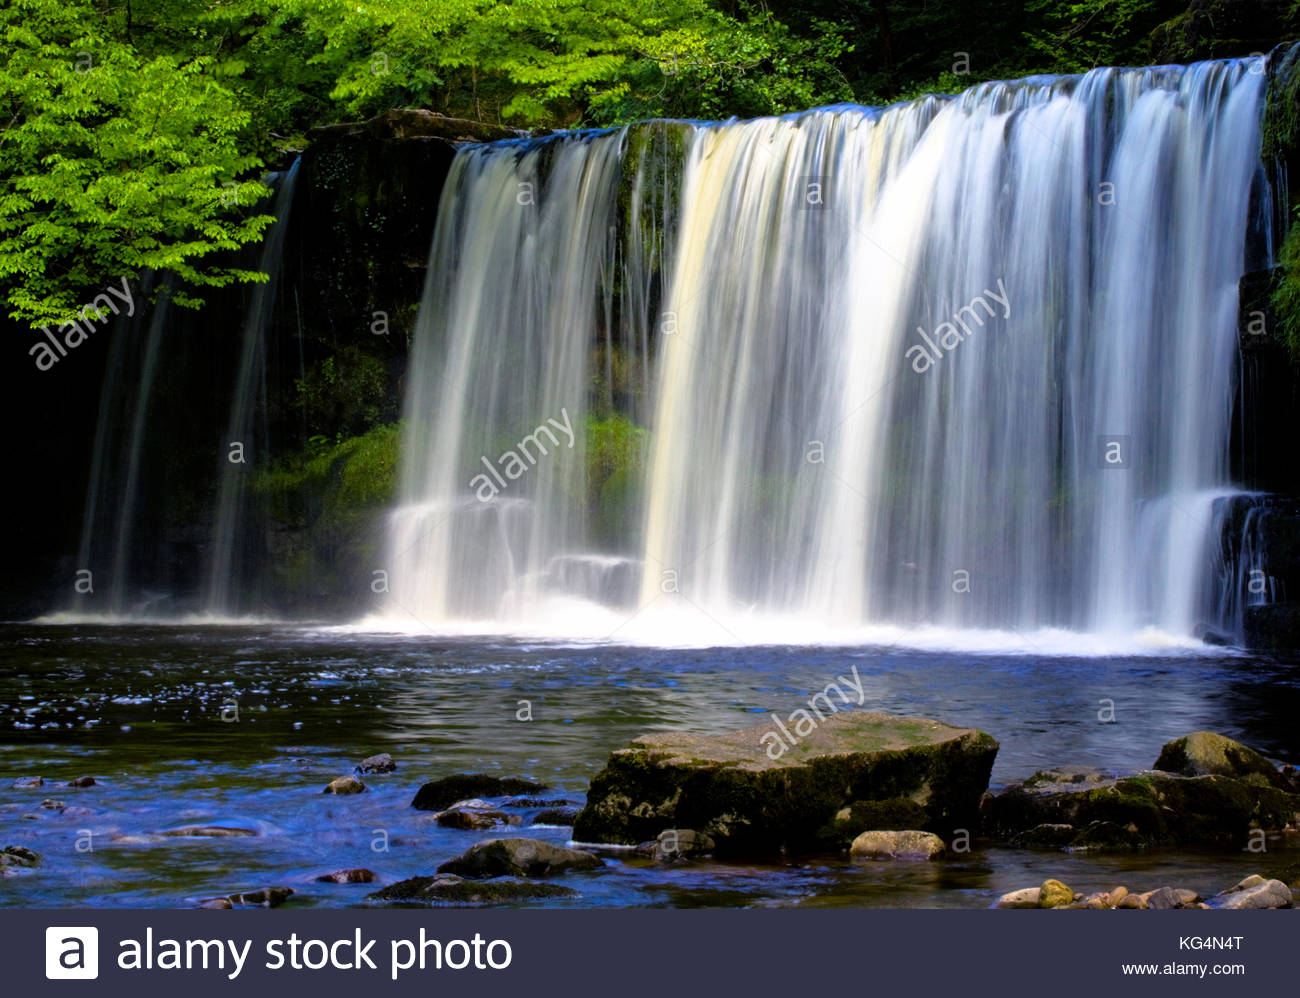 Waterfall Country Fforest Fawr & Black Mountain, Fforest Fawr Geopark Stock Photos & Fforest Fawr Geopark Stock ...